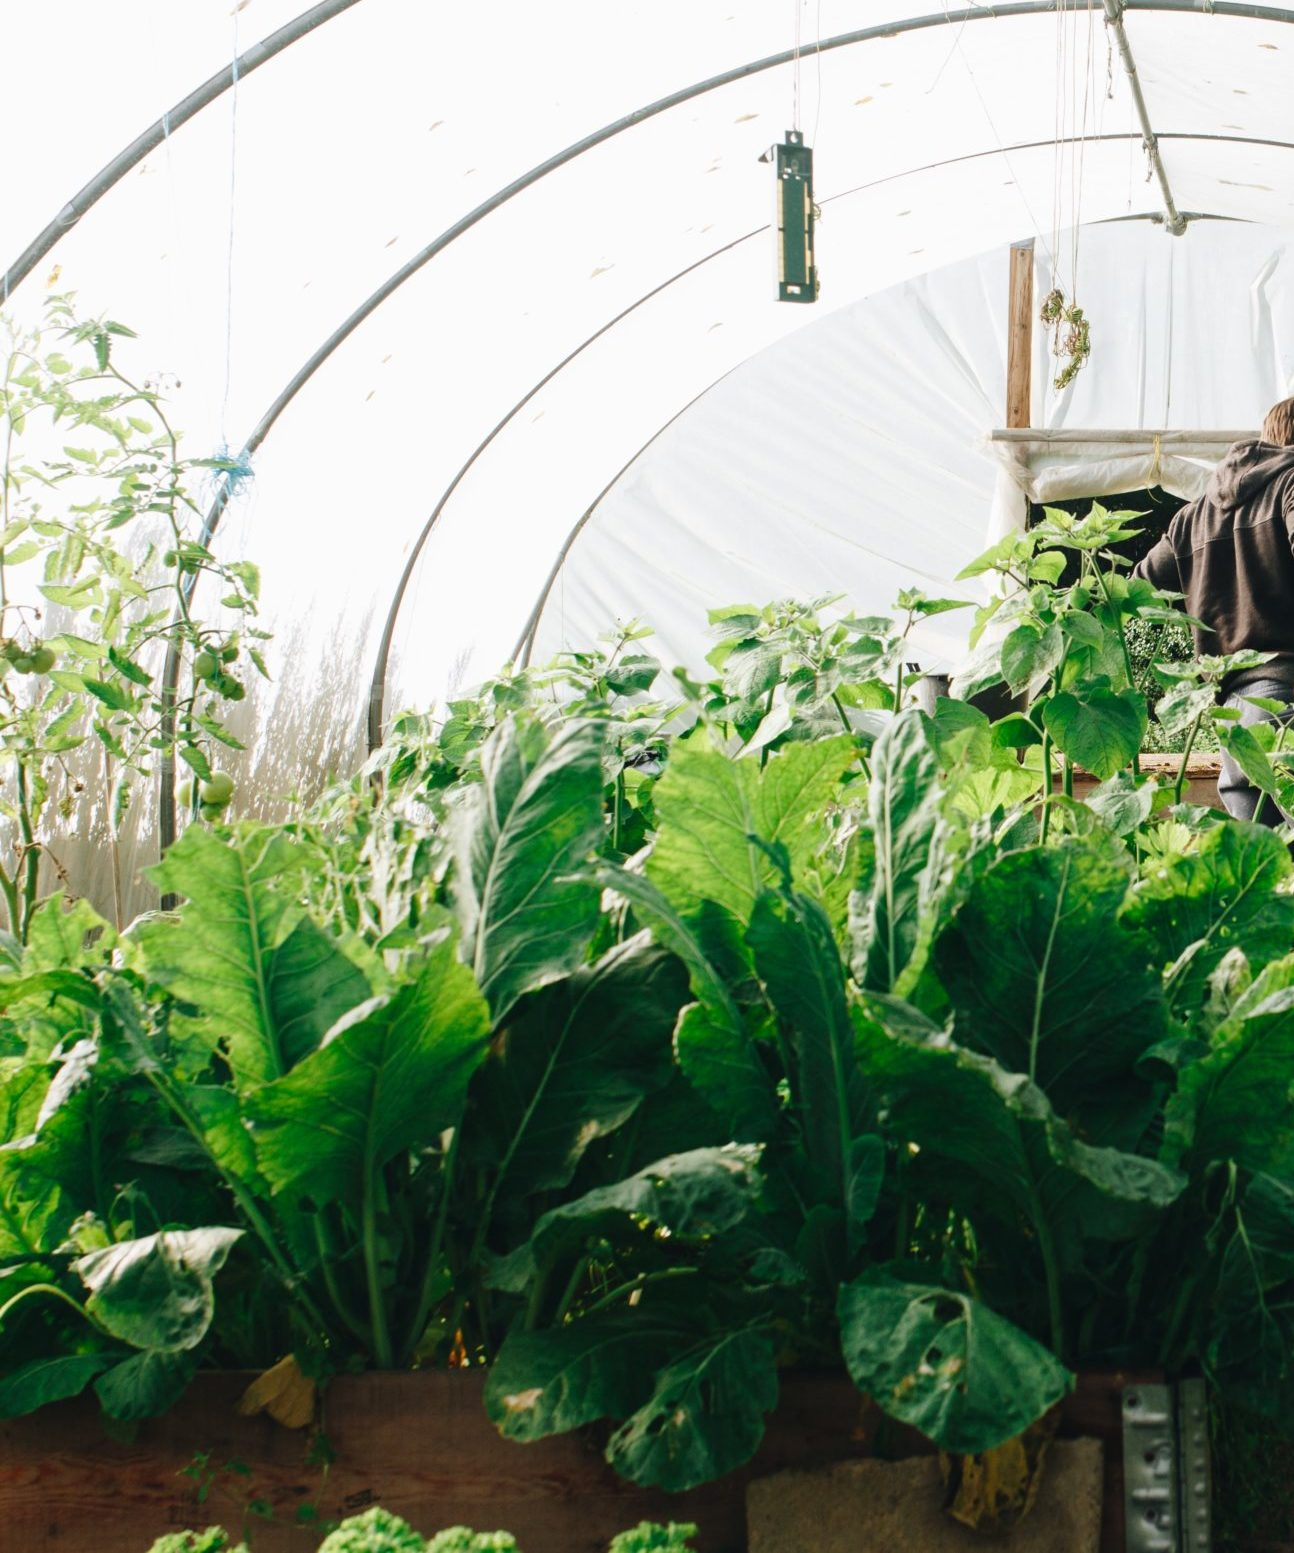 Large leafy greens grow under a high tunnel as a farmer inspects his garden